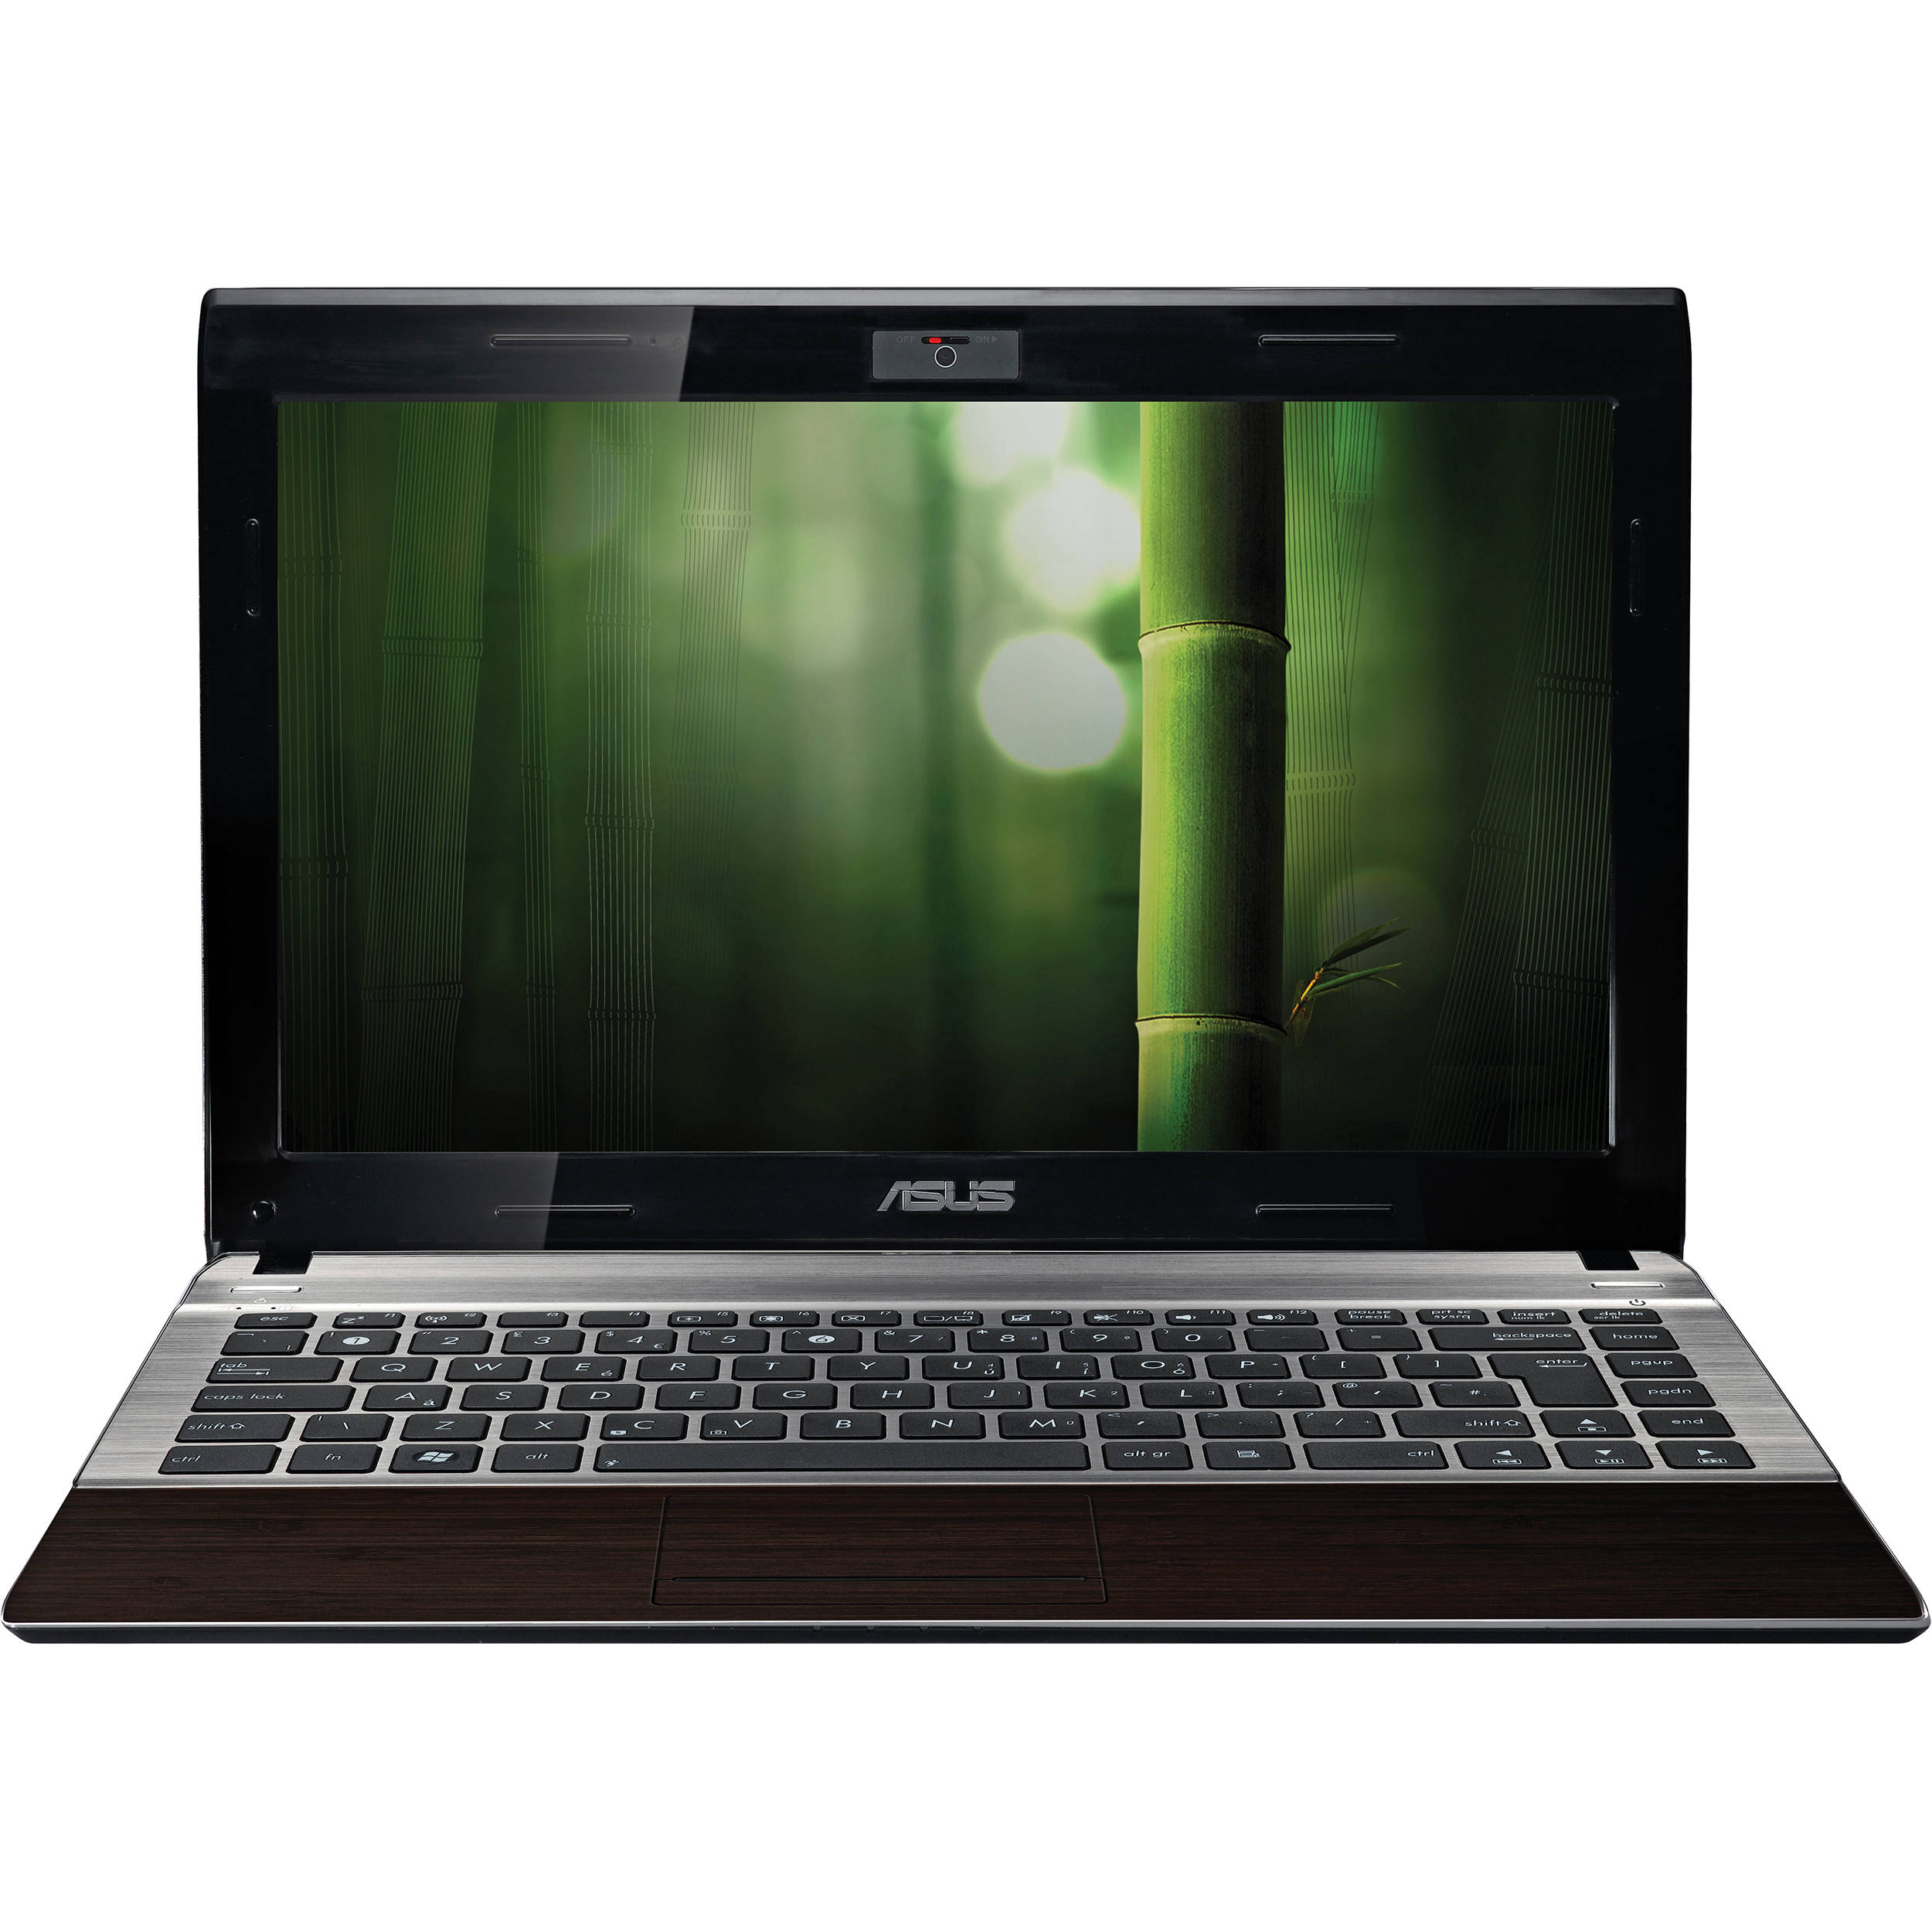 ASUS U33JC NOTEBOOK INTEL RAPID STORAGE DRIVERS FOR WINDOWS VISTA